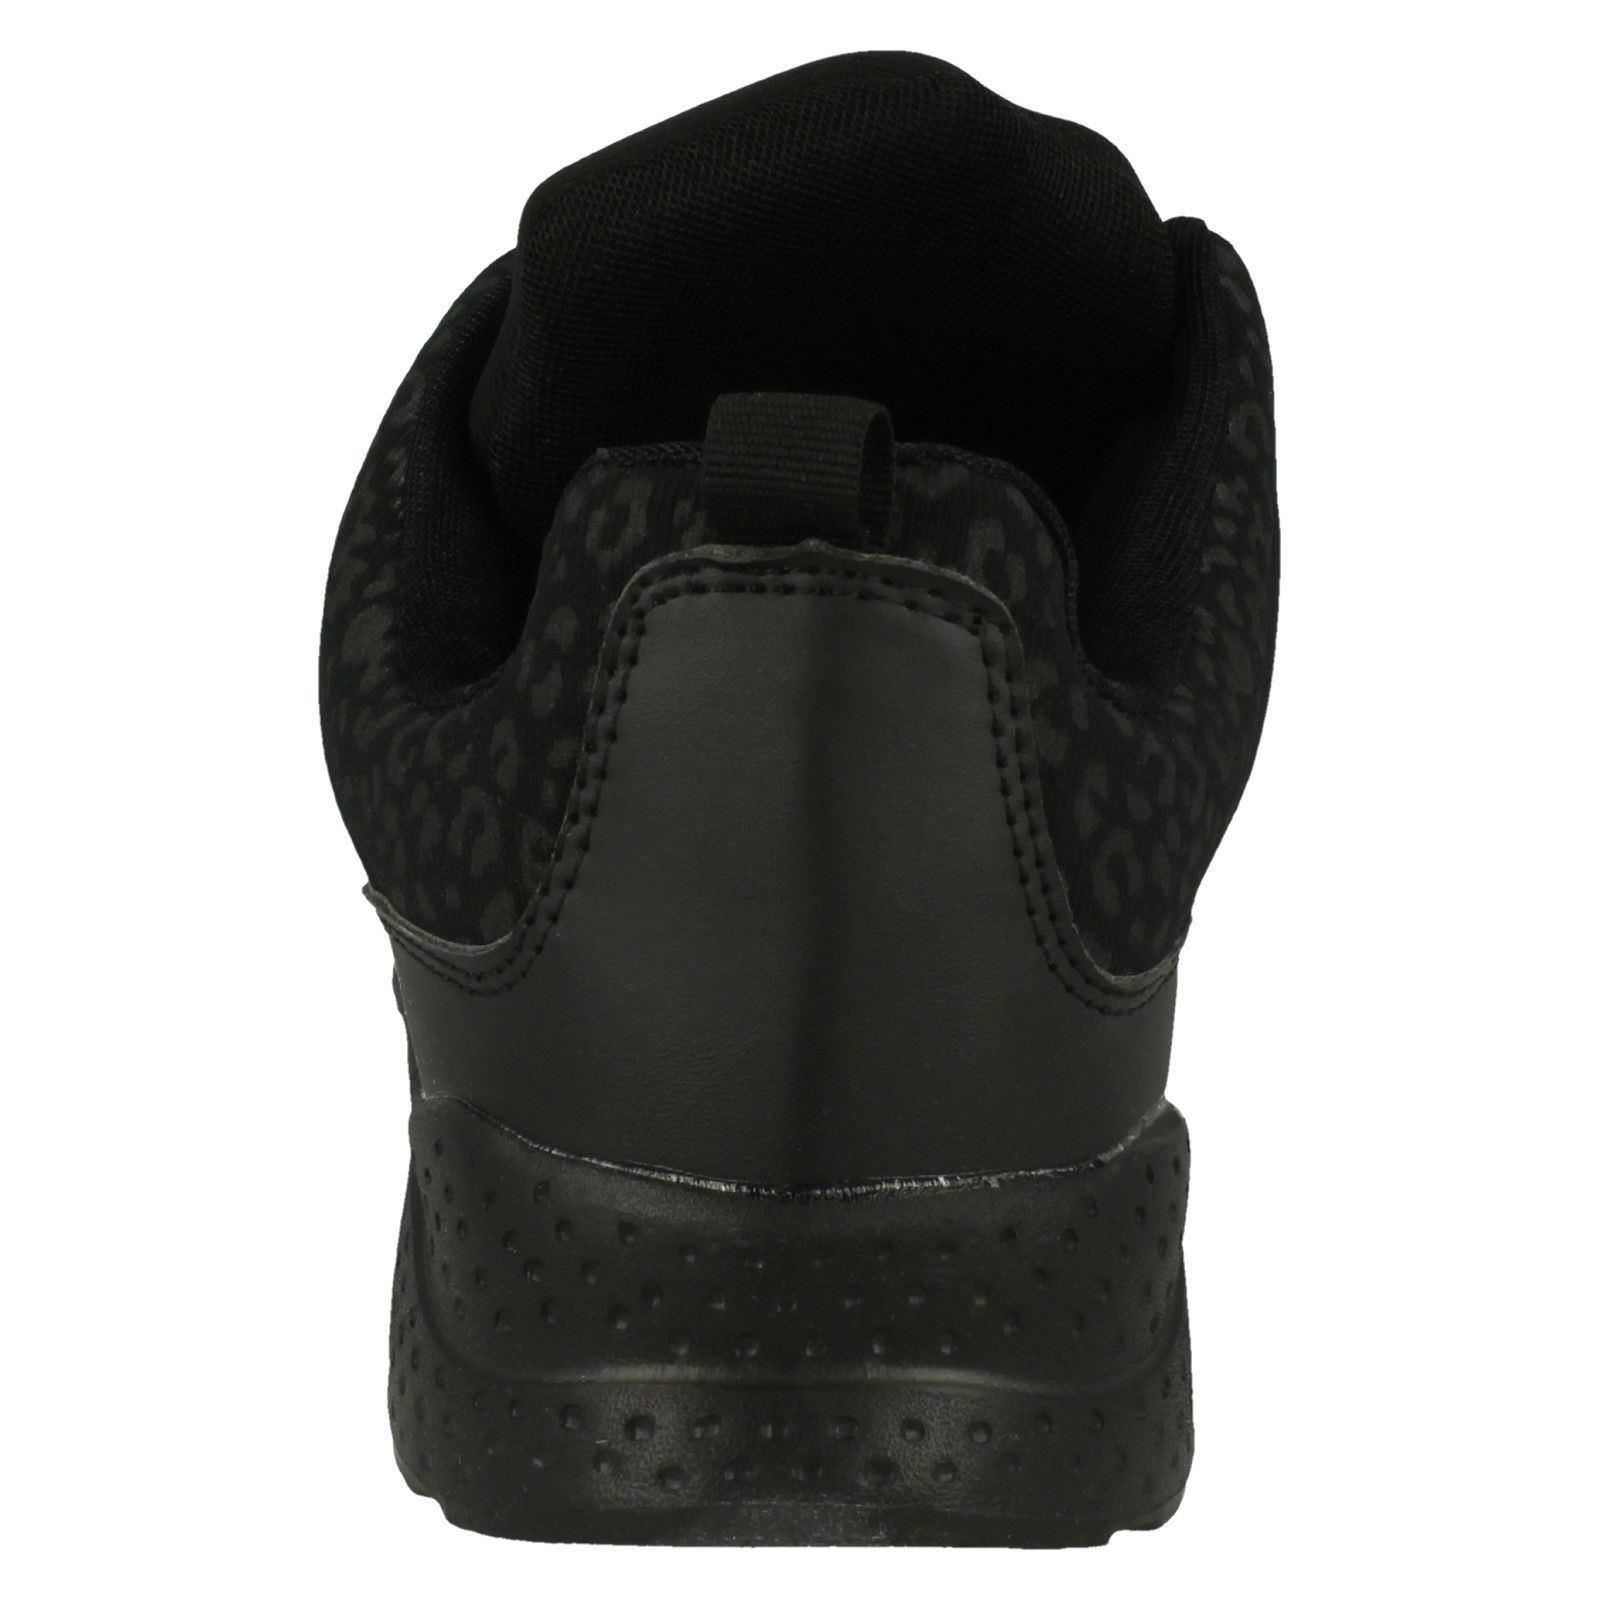 Noir Baskets Up lace Airtech New Hommes Jersey xwYFqv